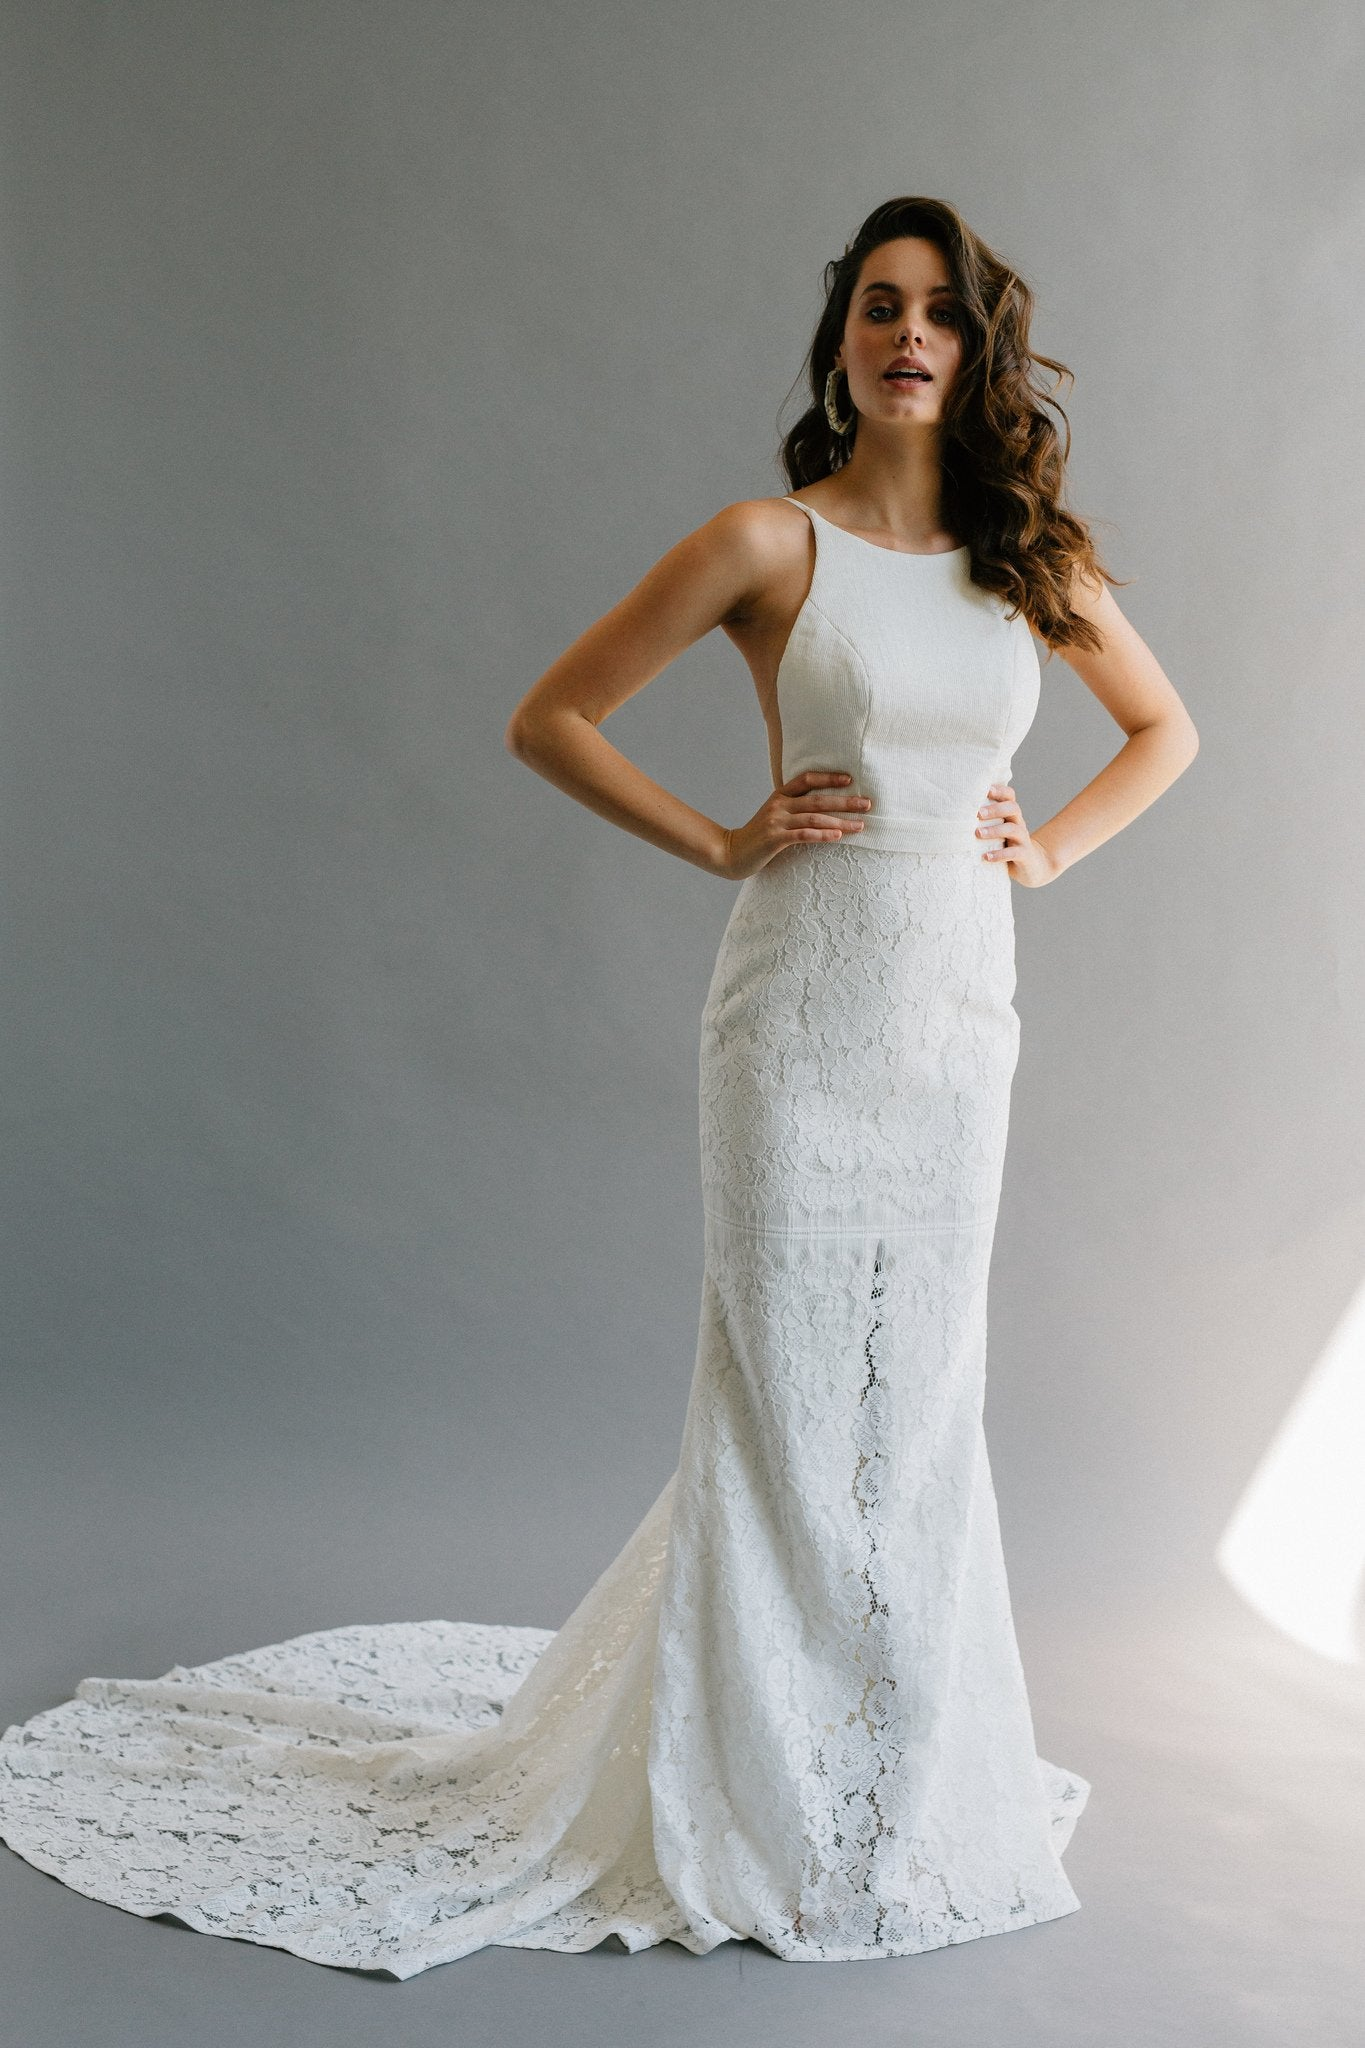 A modern fitted wedding dress with a high neck, low back, and hidden slit in the lace skirt.